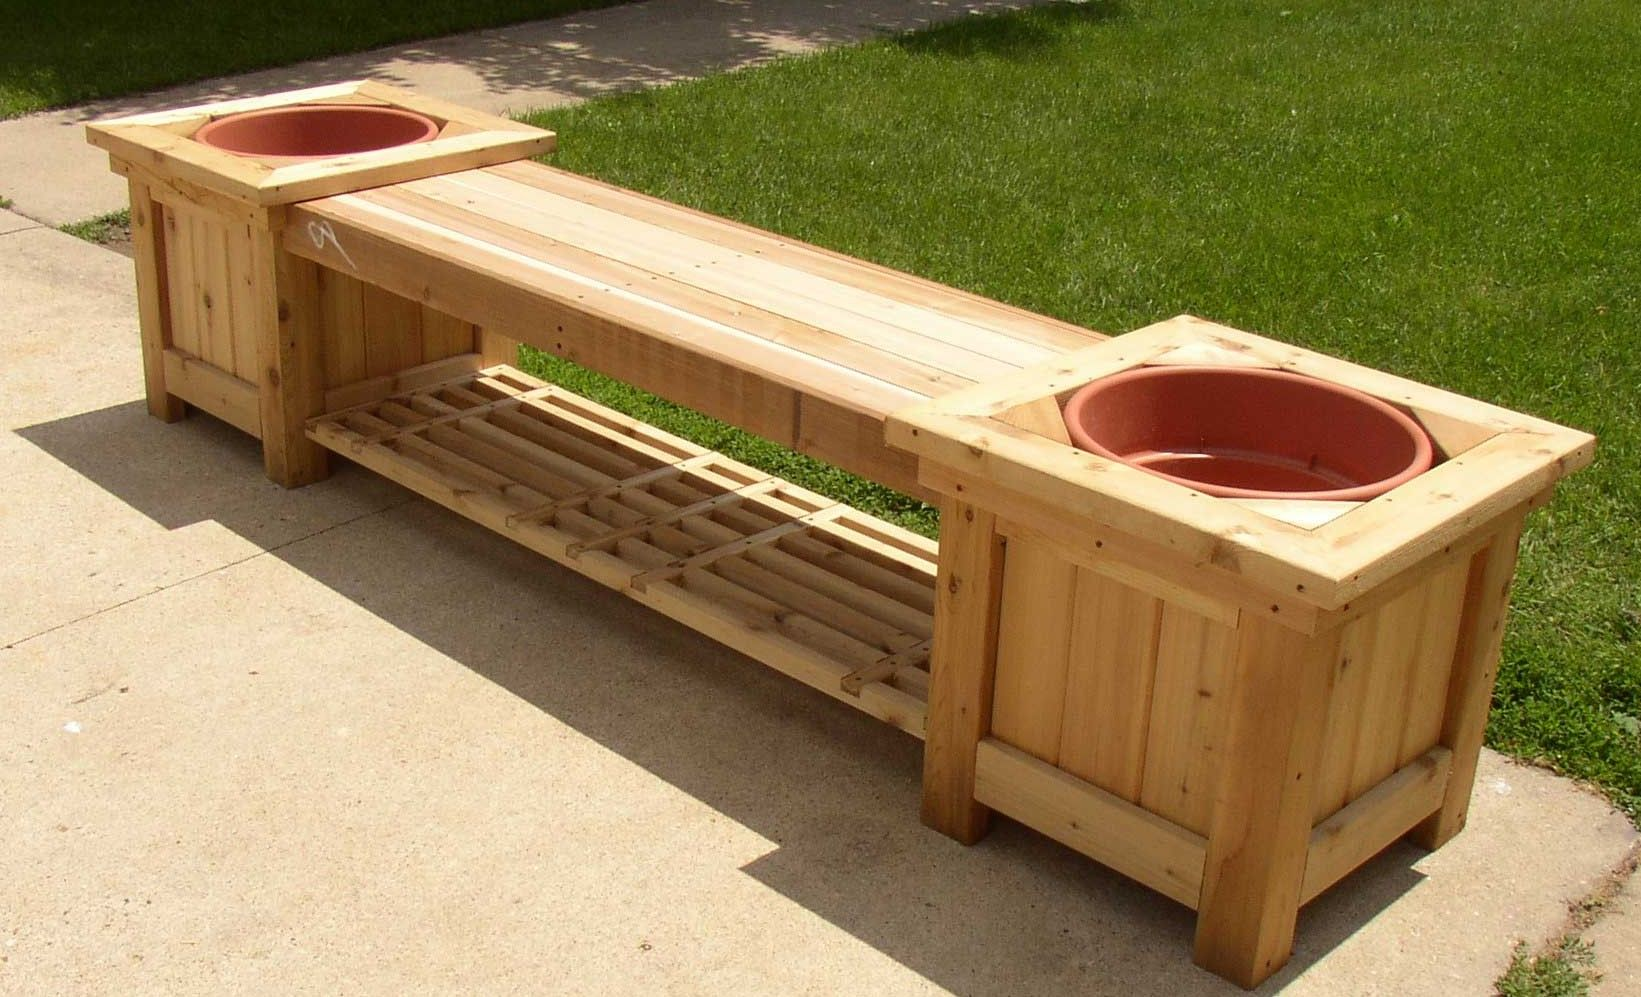 Diy Wood Planter Bench Plans Wooden Pdf Build Woodworking Workbench